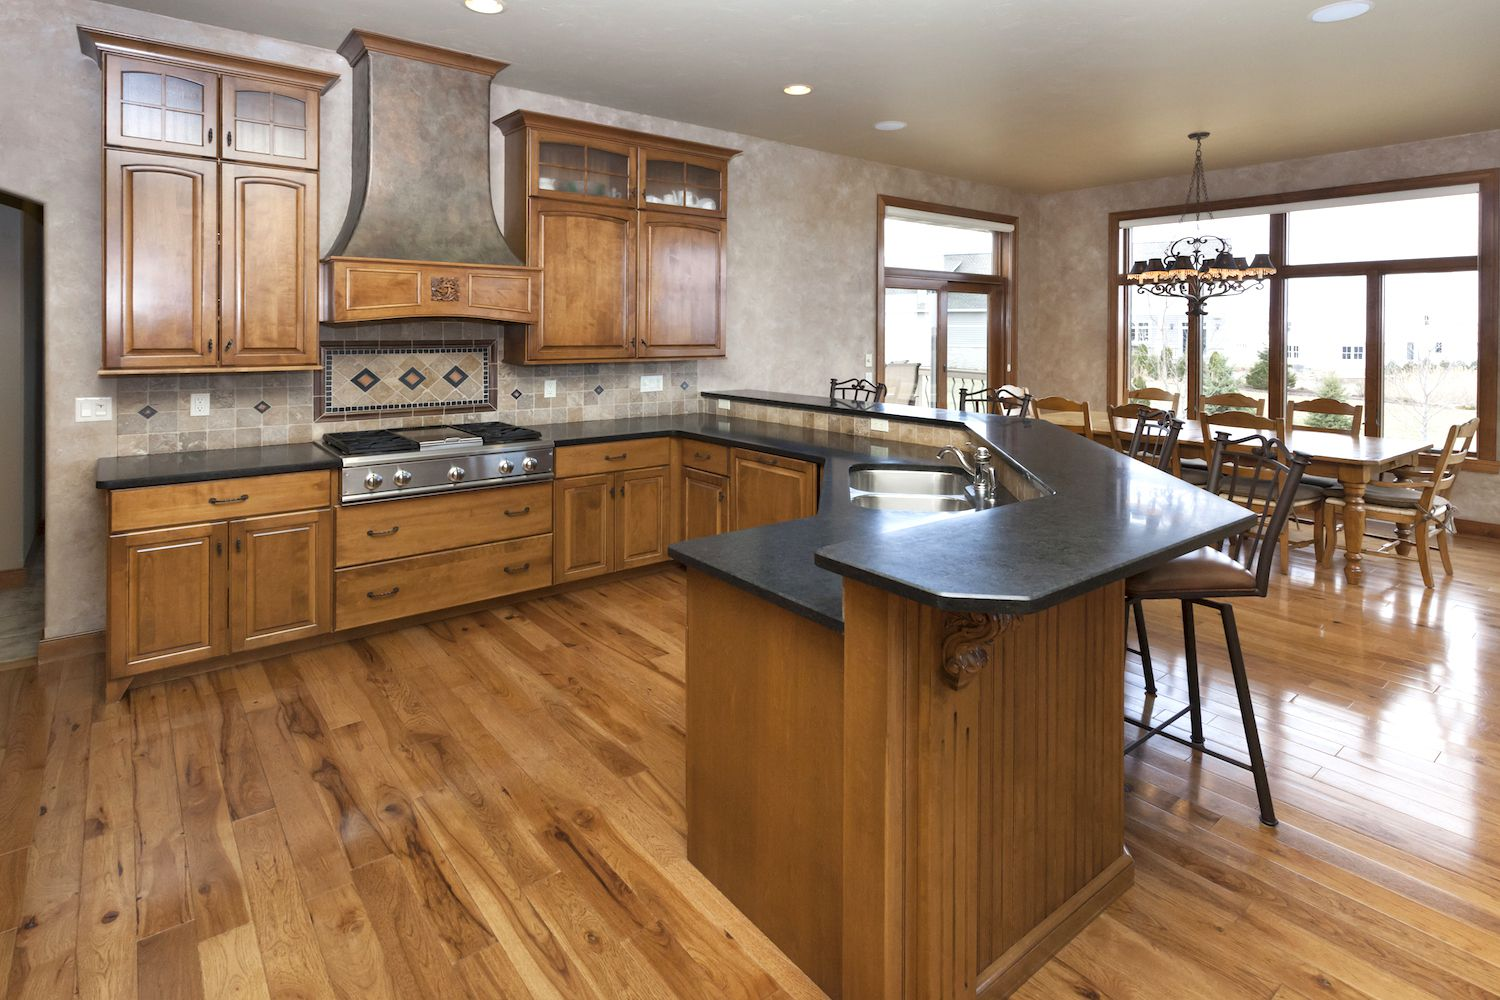 Granite Counter Tops : How to choose the best colors for granite countertops